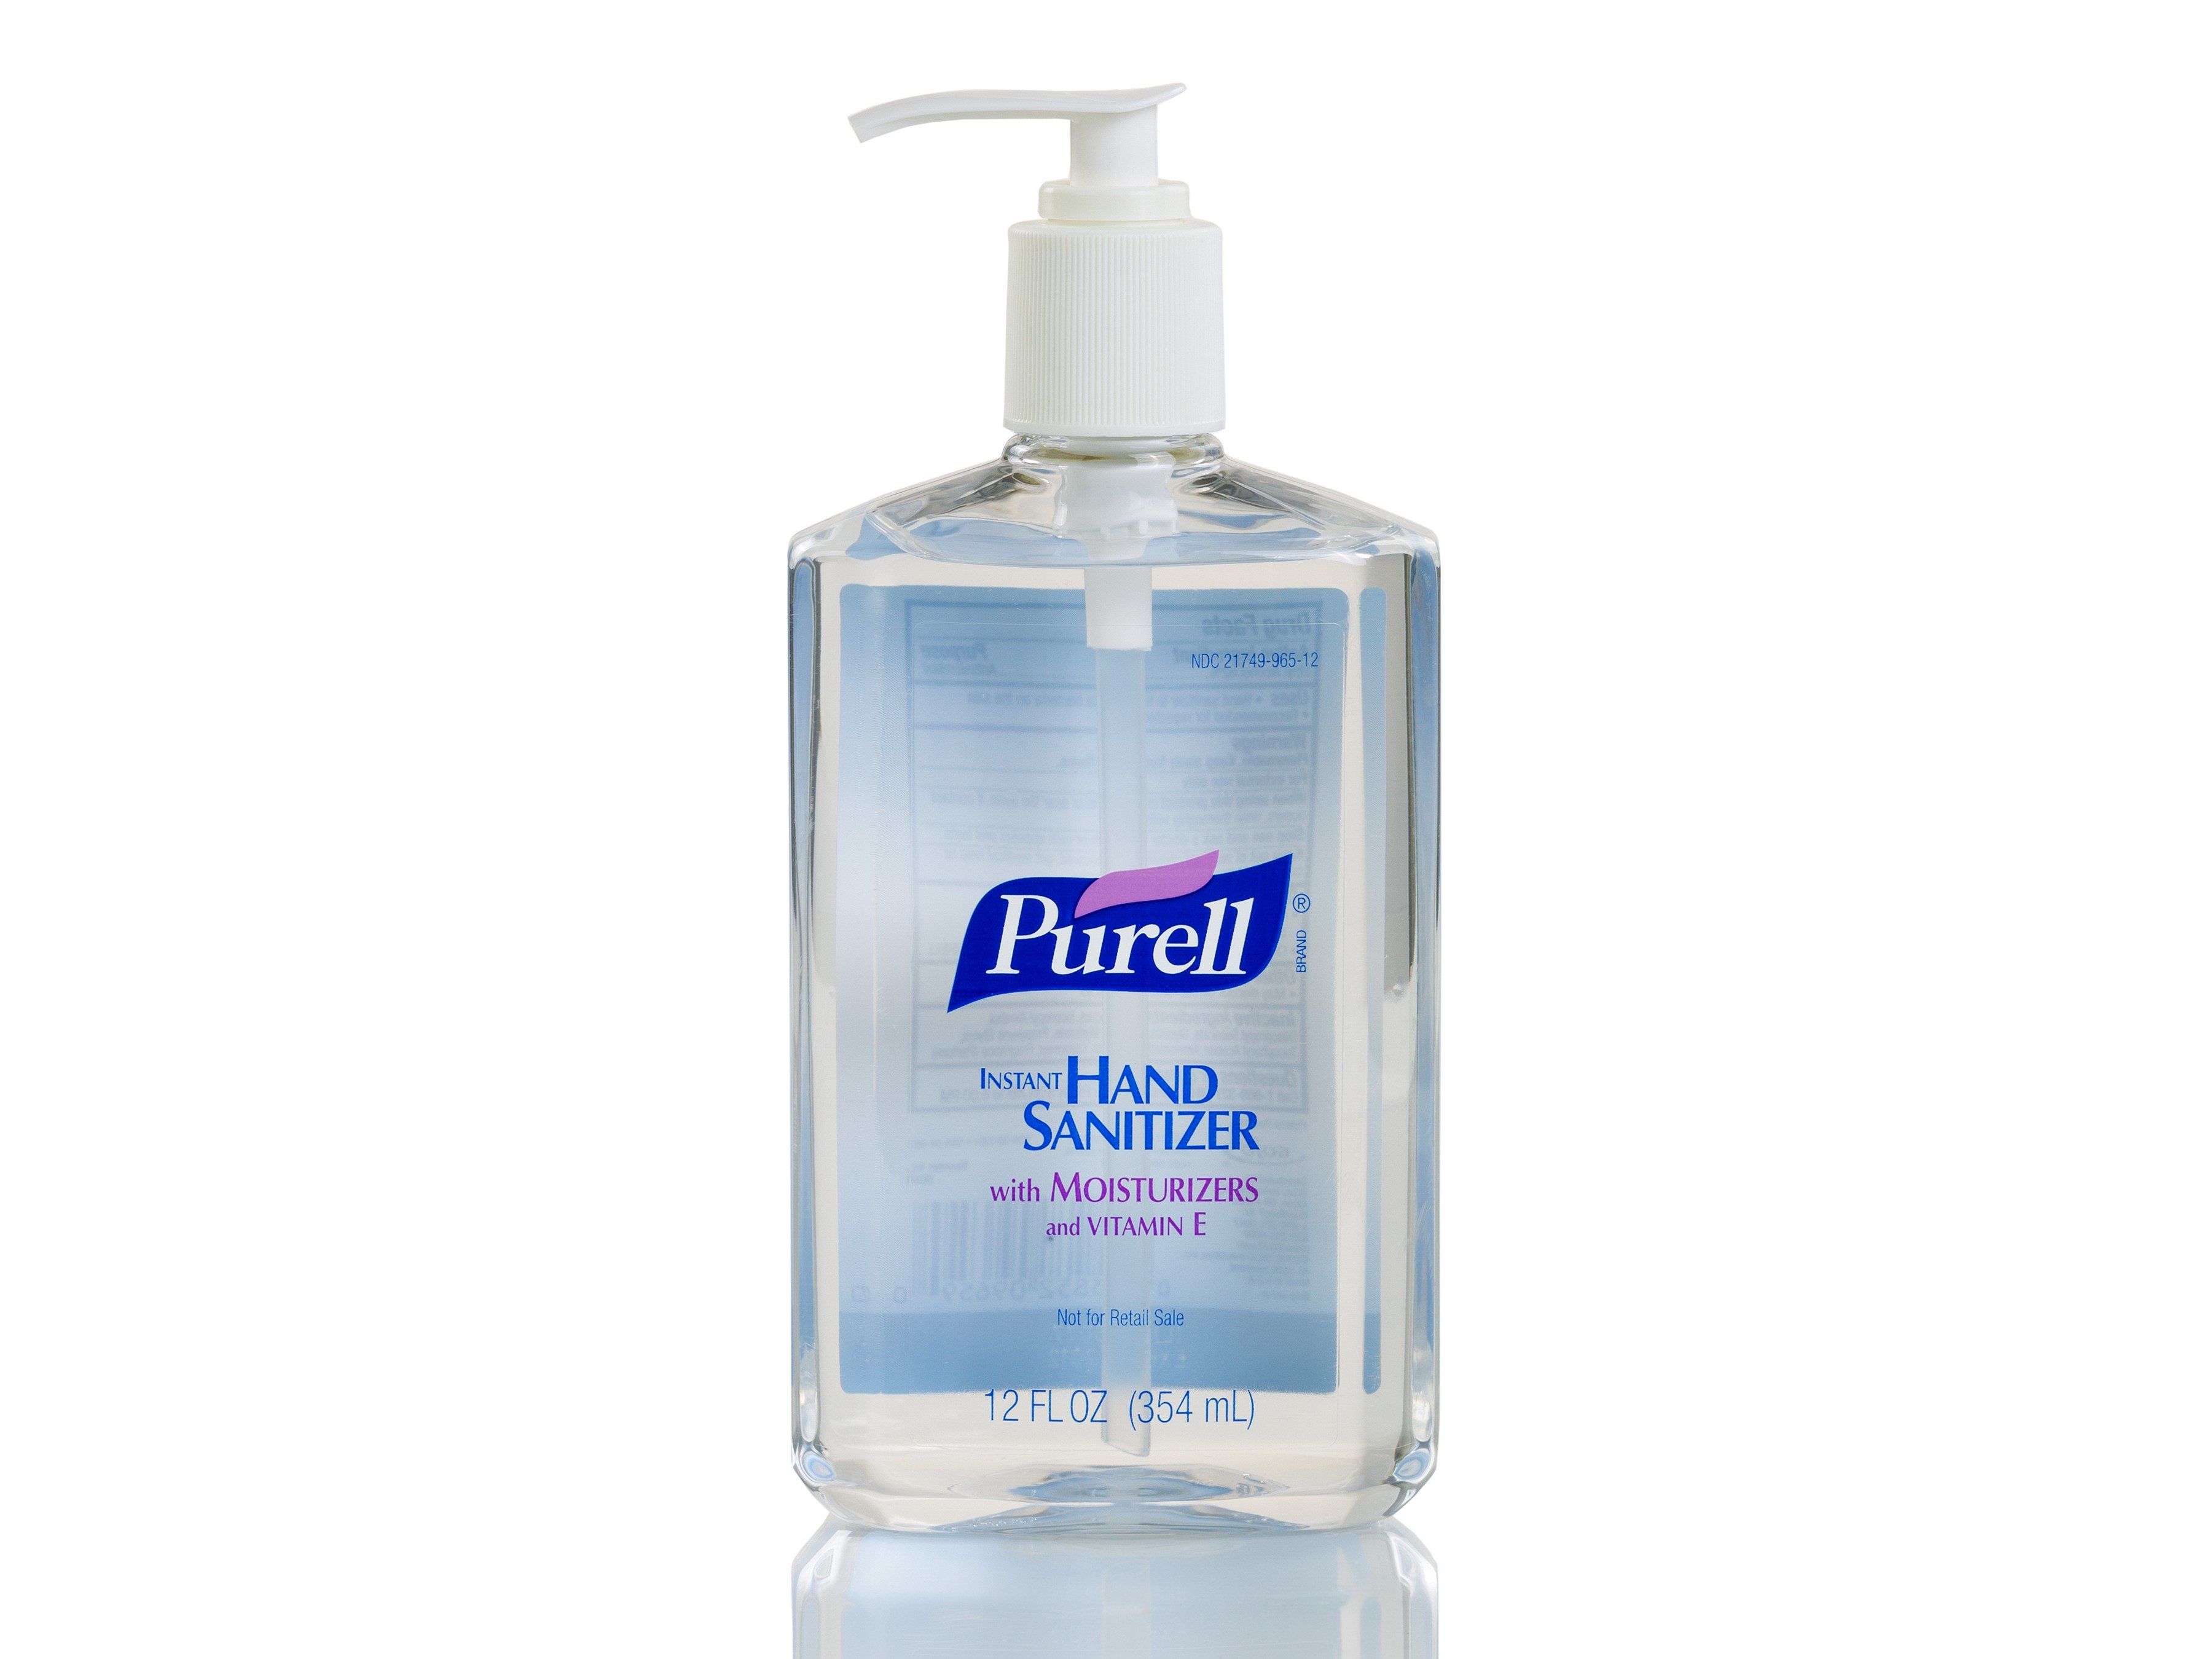 2. Hand sanitizer is the next best thing to washing.